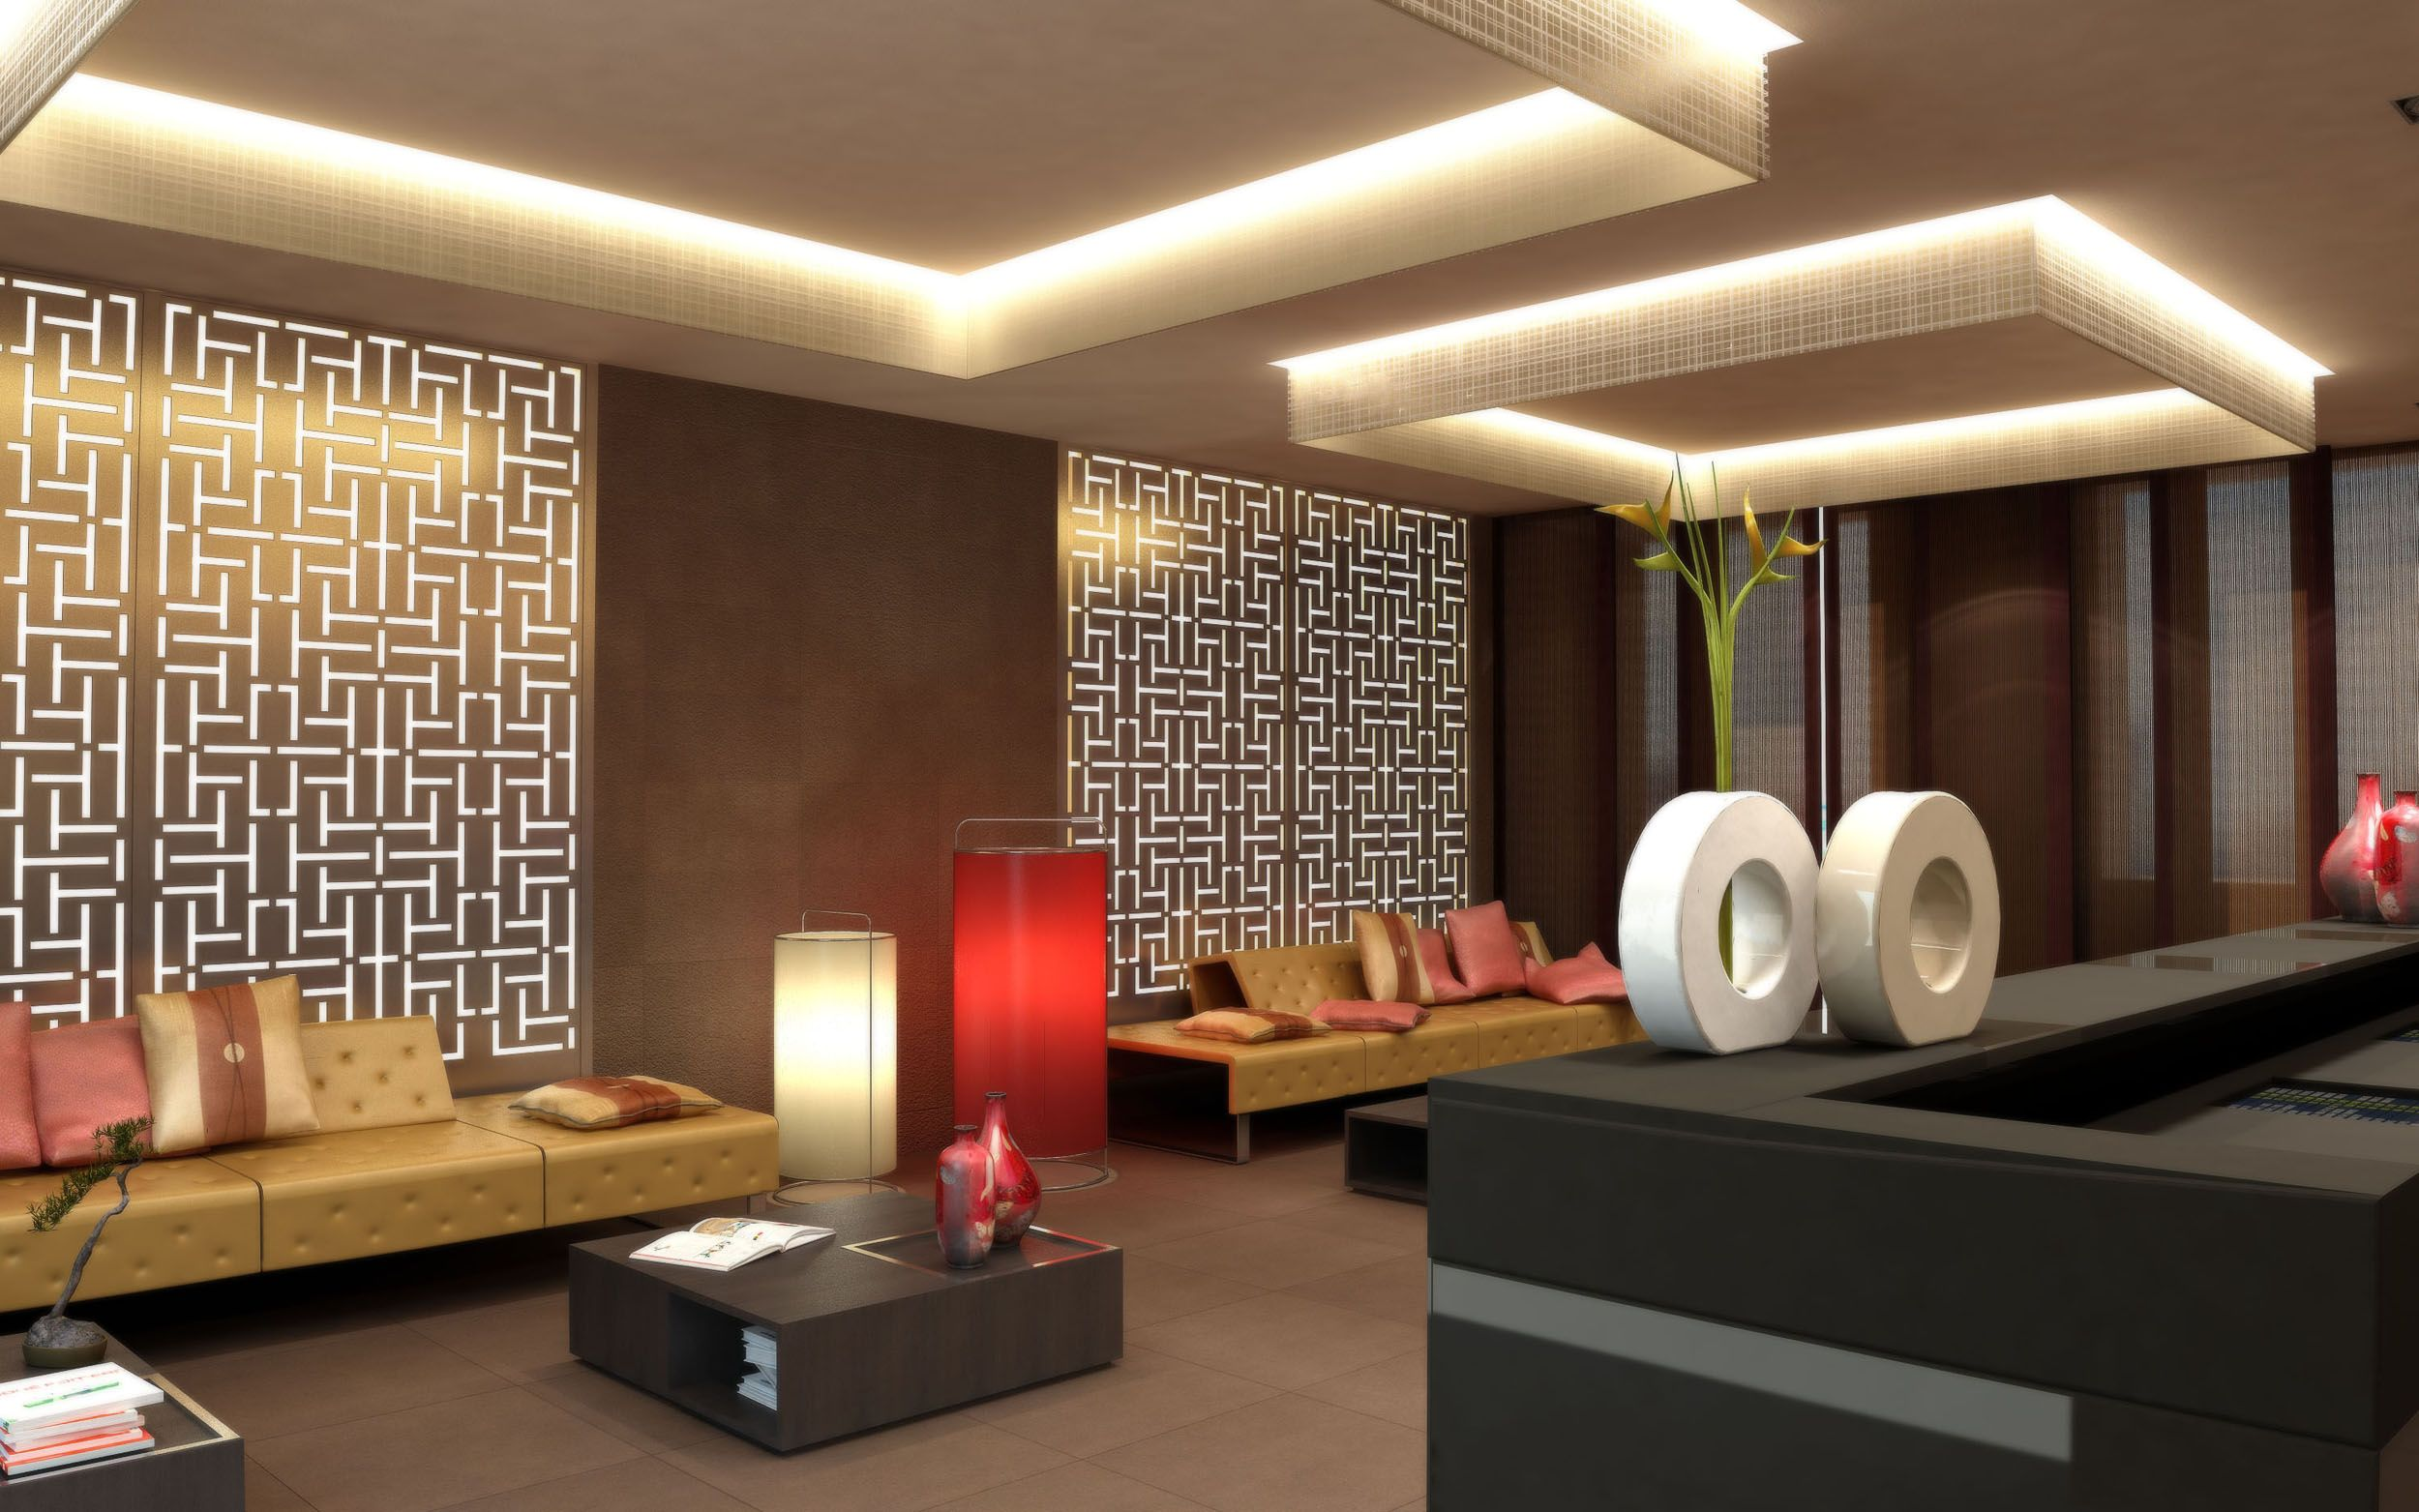 Chinese Interior Design Images Chinese Interior Design Pinterest Chinese Interior